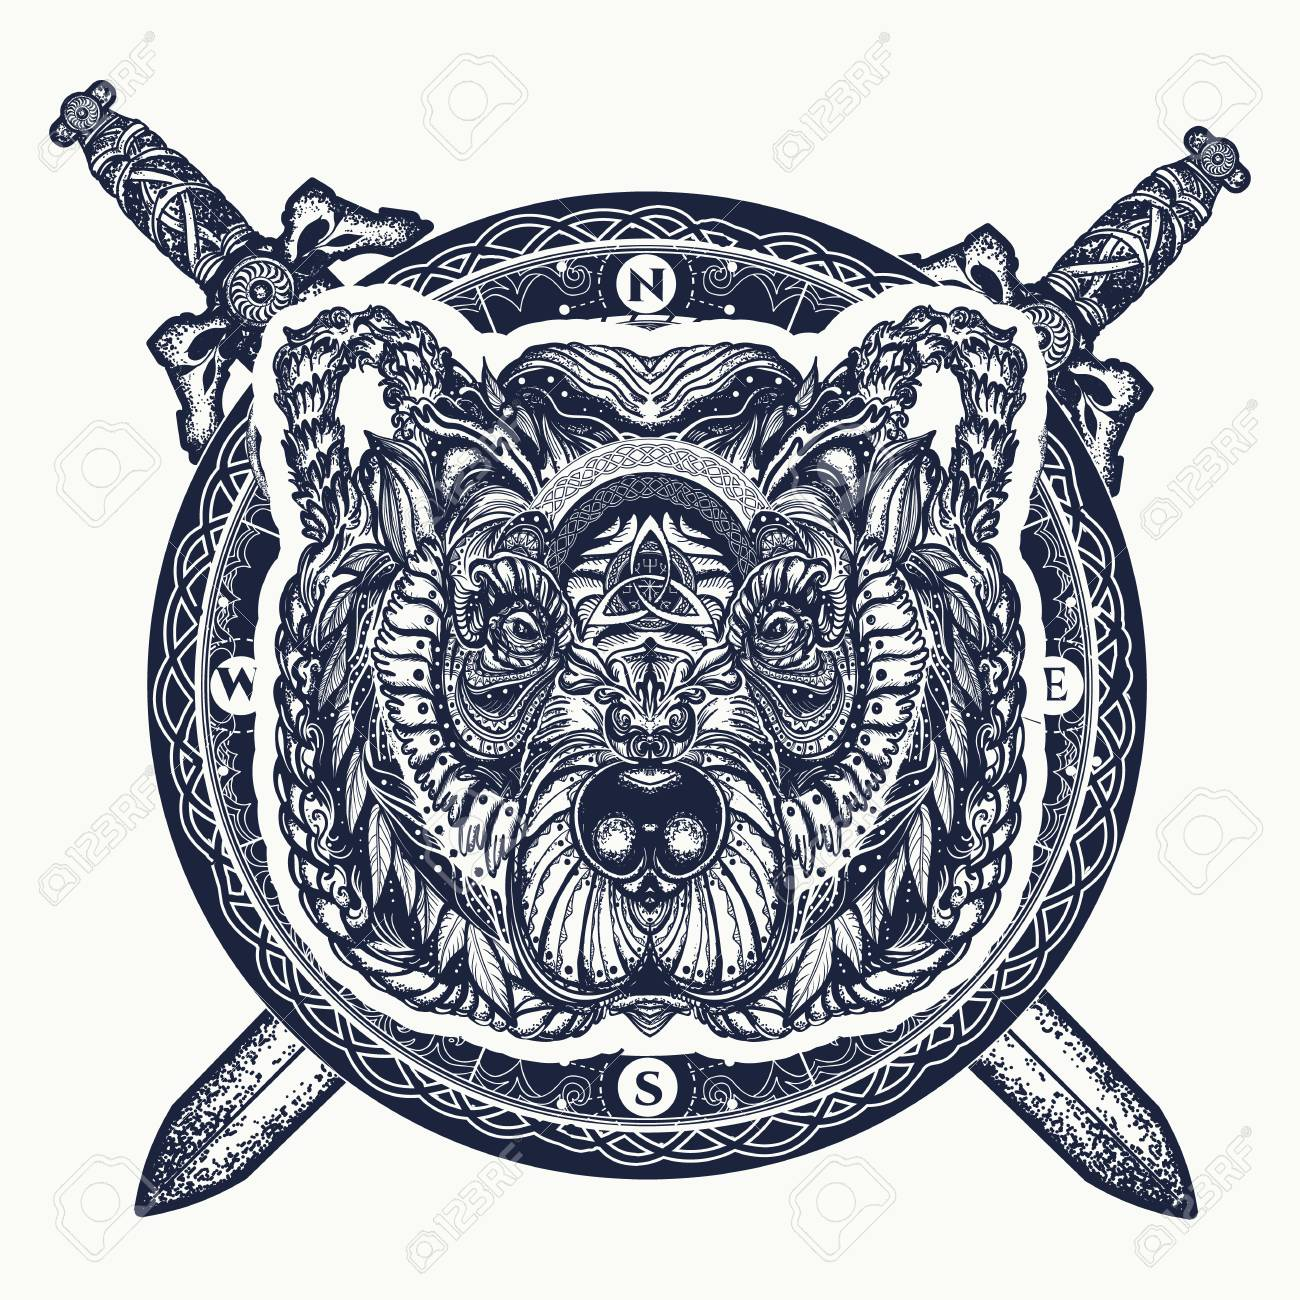 Bear and crossed swords tattoo and t-shirt design. Northern grizzly bear, symbol of force, wild nature, outdoors. - 90457137